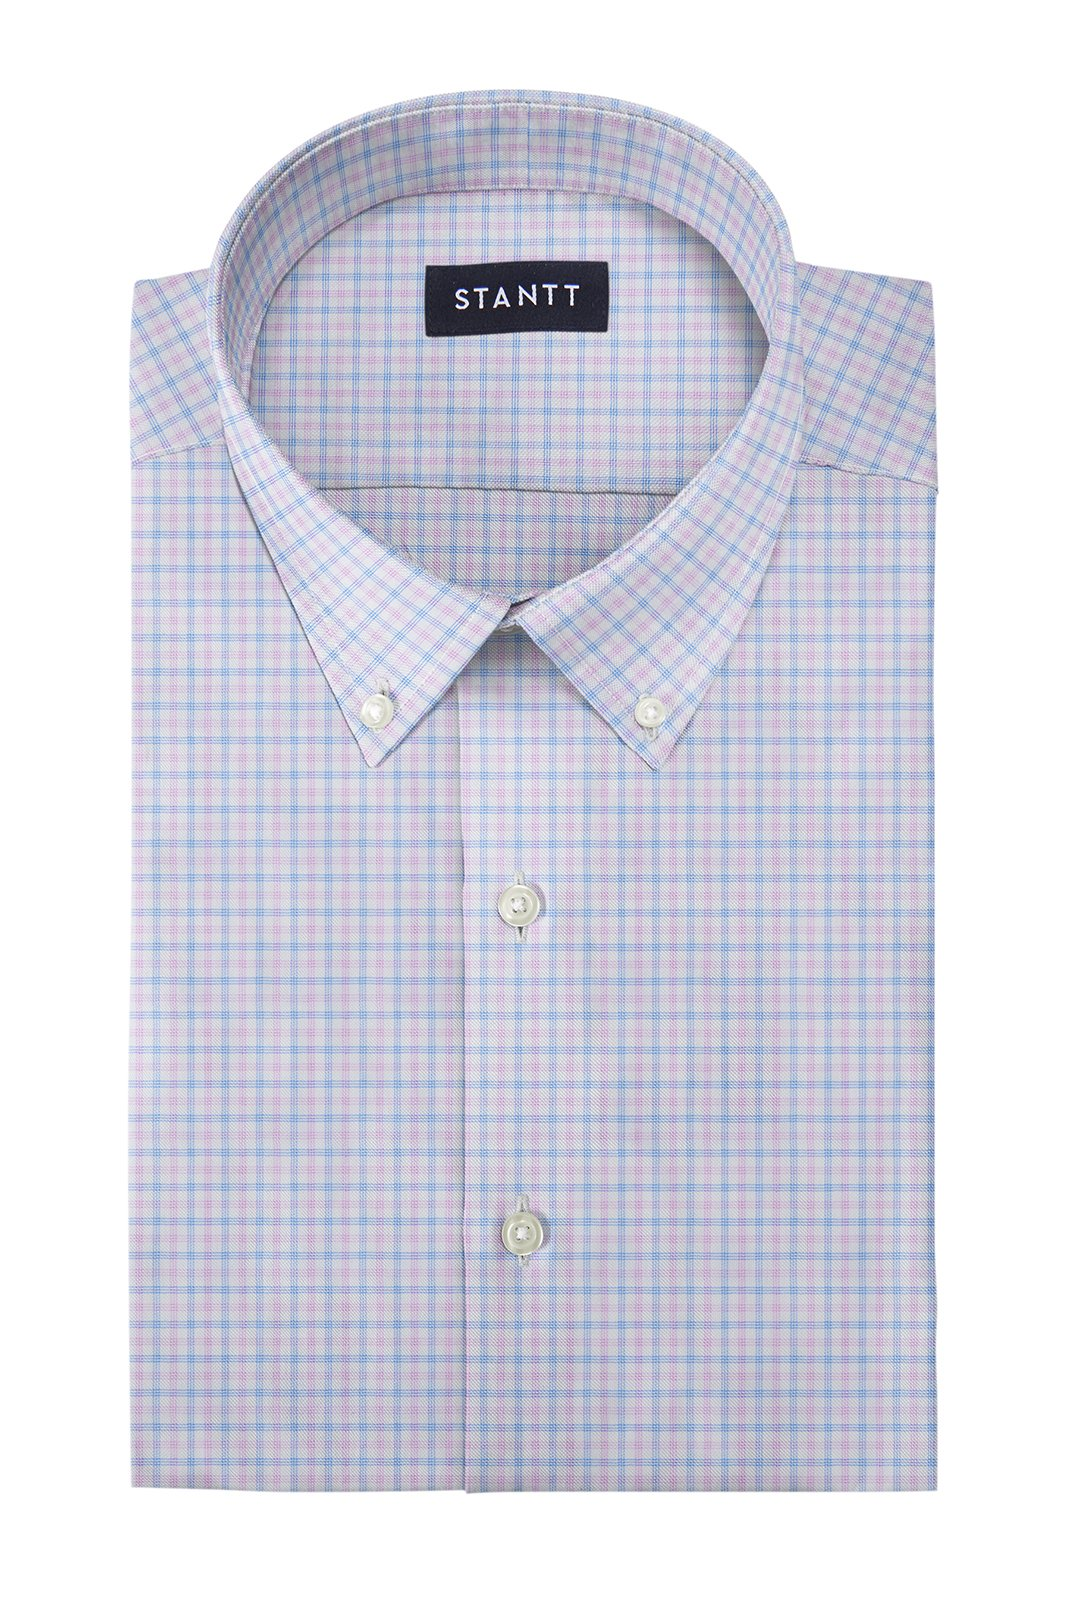 Performance Light Pink and Sky Blue Tattersall: Button-Down Collar, Barrel Cuff